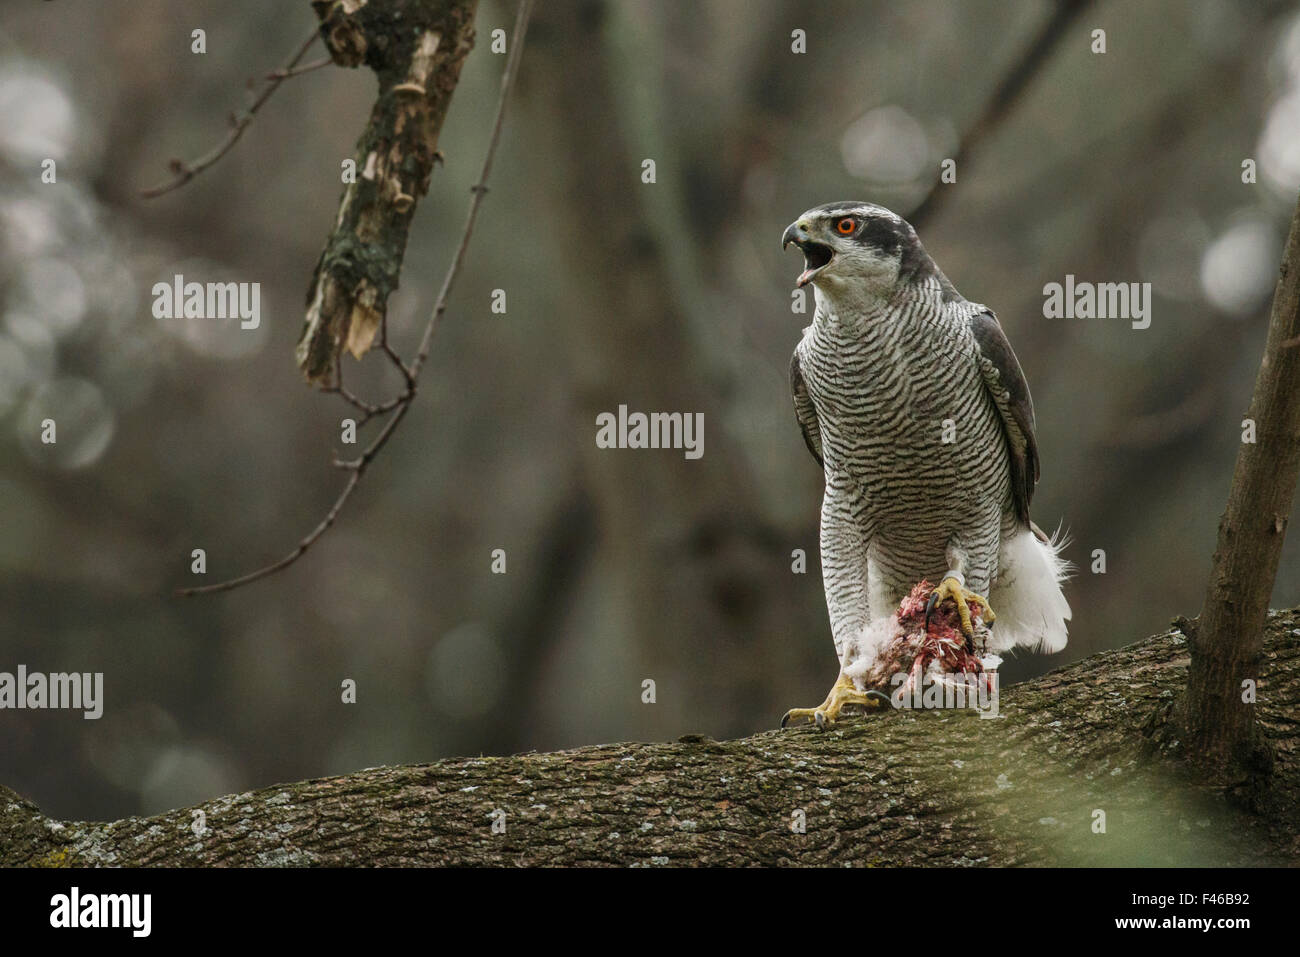 Northern goshawk (Accipiter gentilis) adult male calling to mate with food during courtship, Berlin, Germany, March. - Stock Image